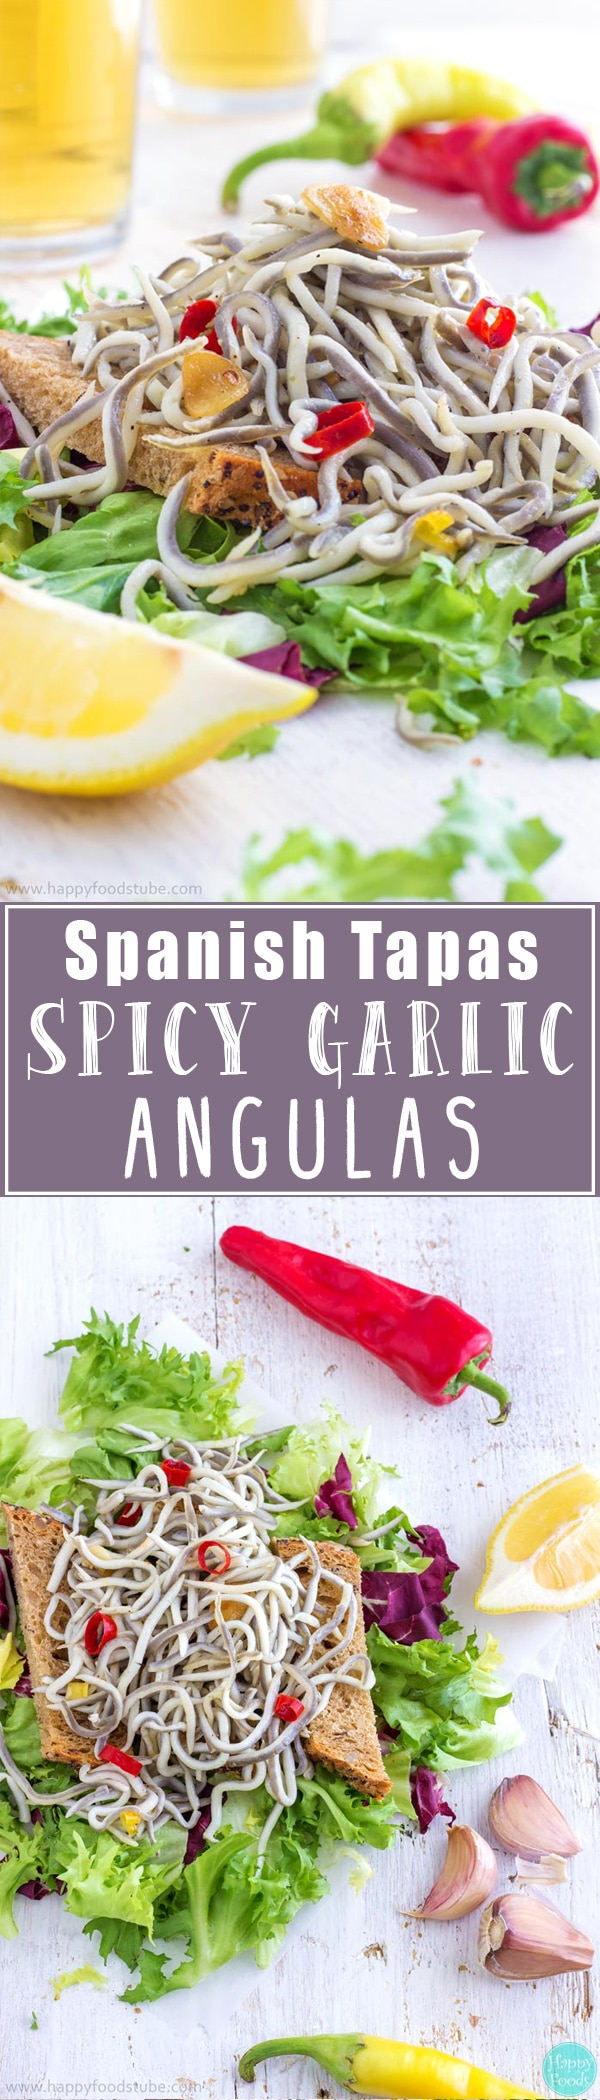 These Spicy Garlic Angulas make a great appetizer or a snack! Angulas are a traditional Basque dish but nowadays they can be enjoyed as tapas all over Spain | happyfoodstube.com